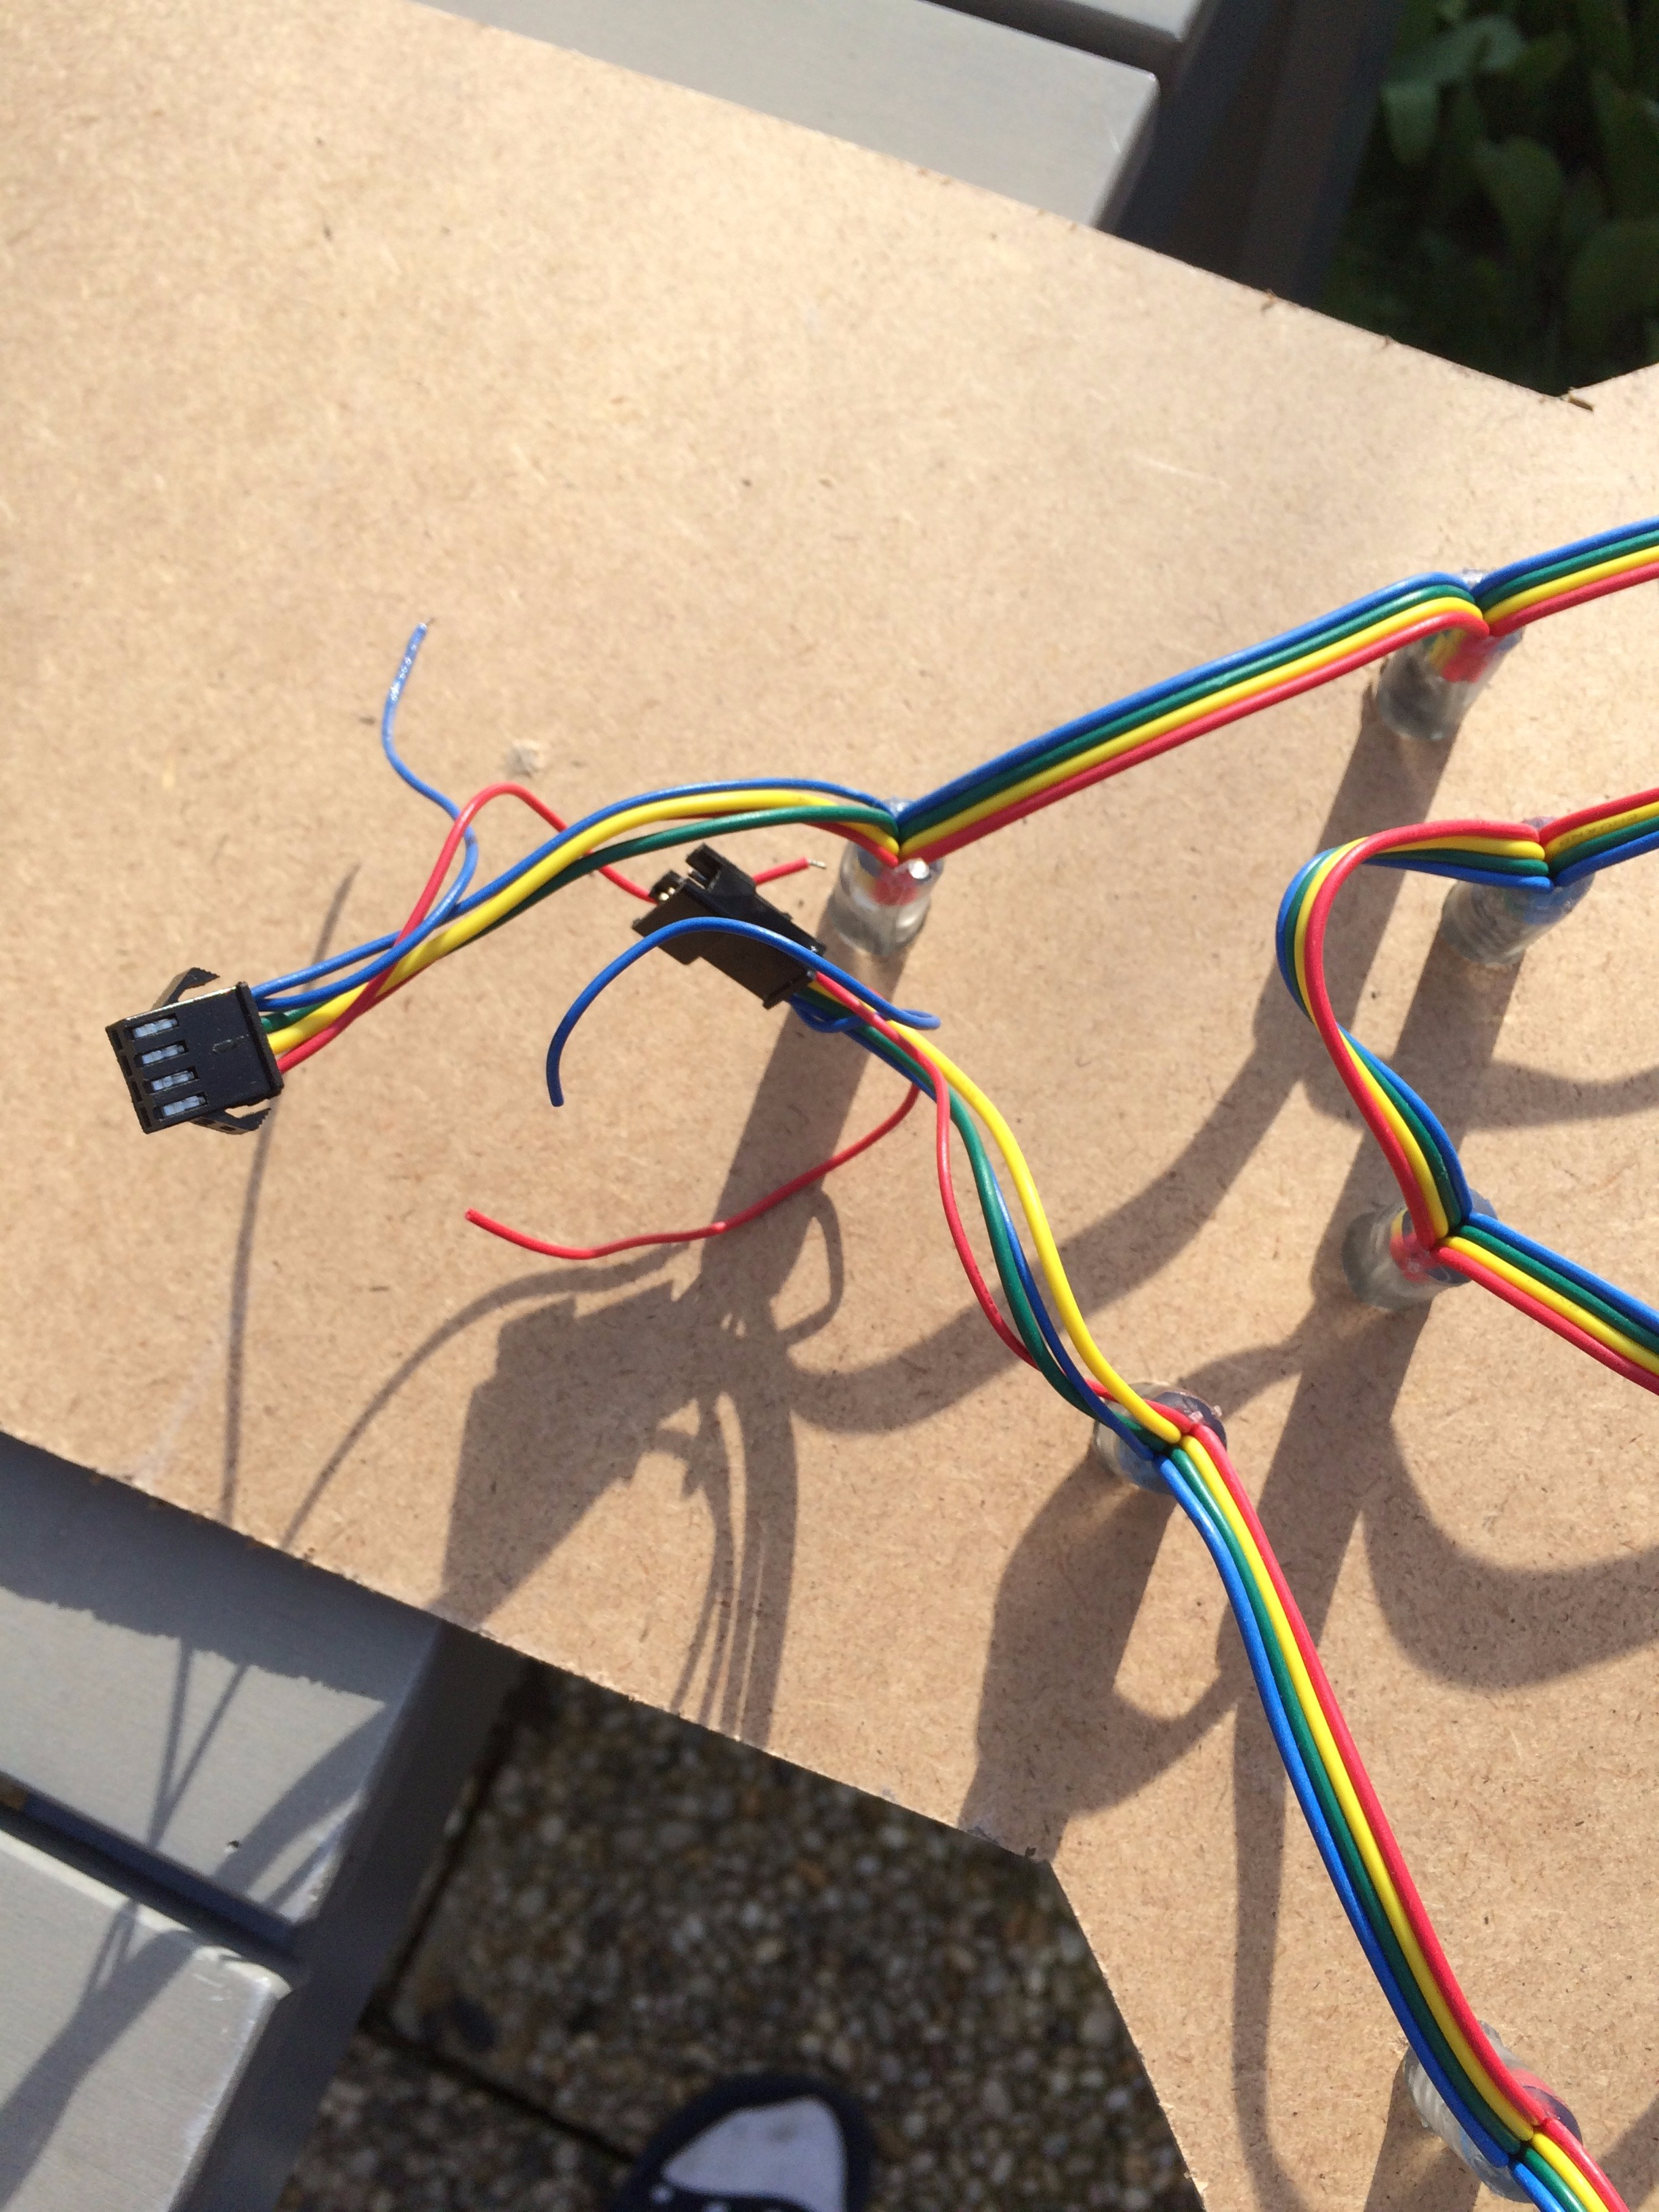 Picture of Step 3: Insert the LEDS